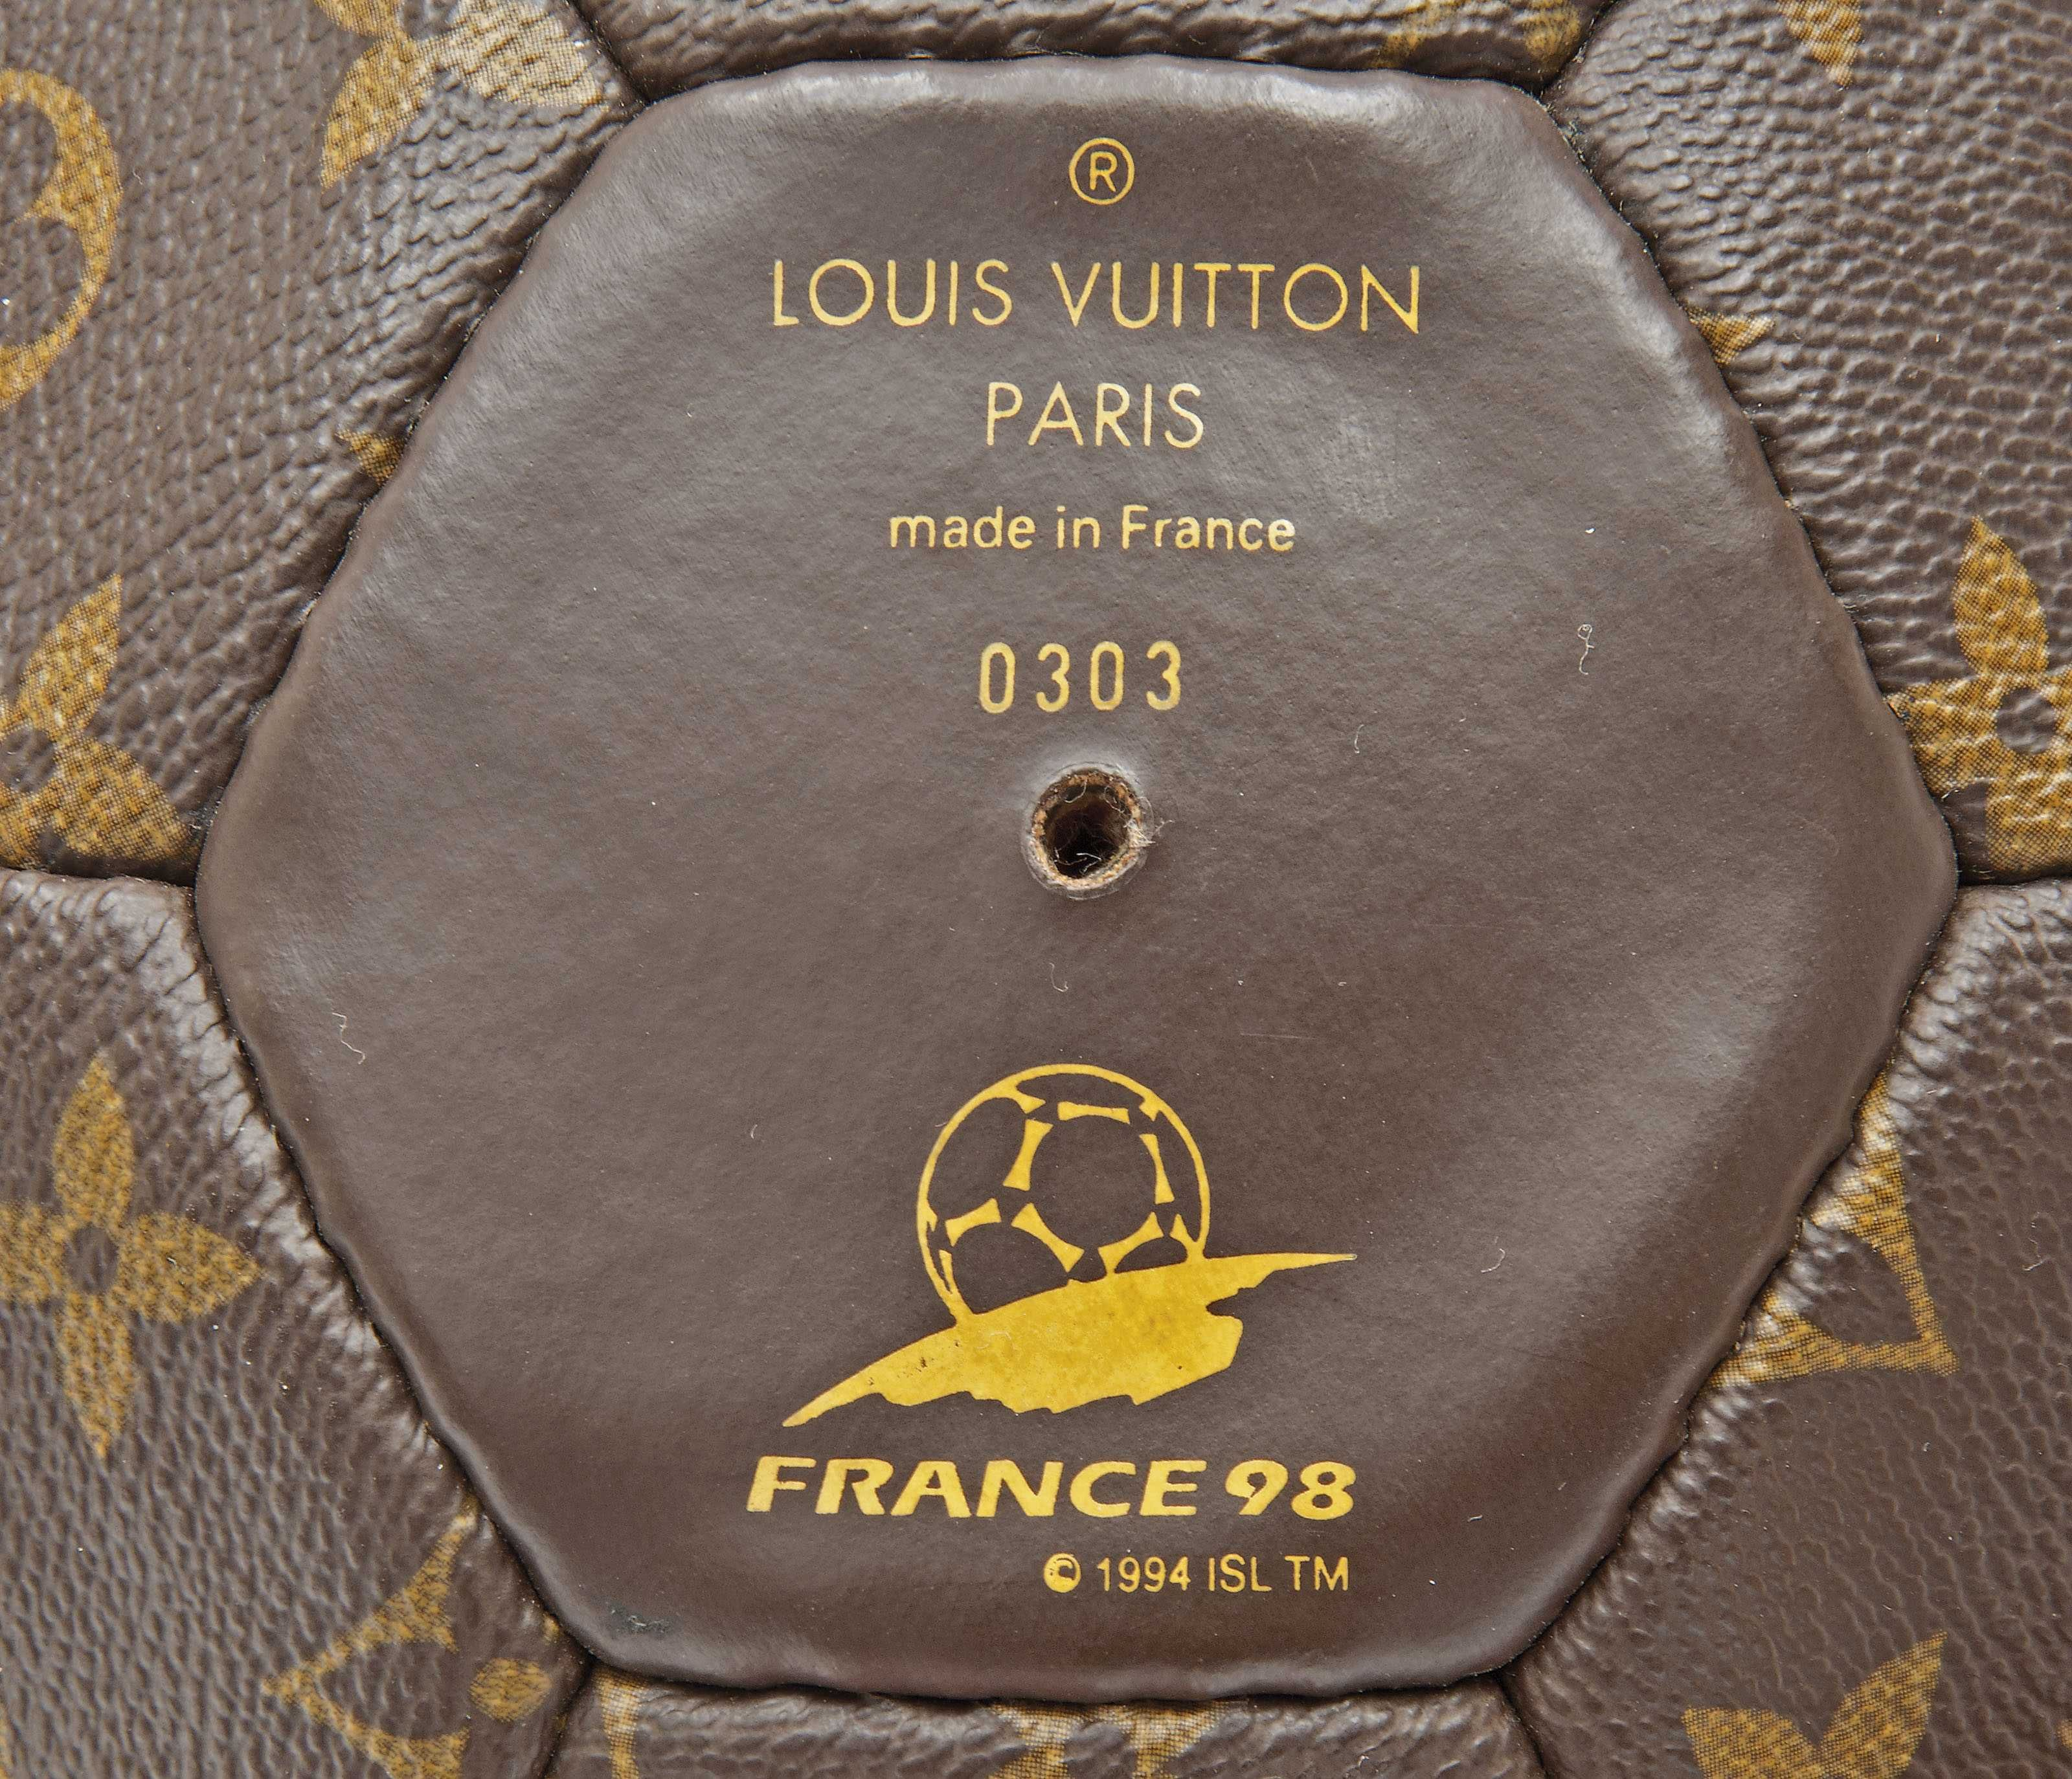 f6c8e35c426 A LIMITED EDTION MONOGRAM CANVAS FRANCE WORLD CUP FOOTBALL Christie s  Vintage Couture  Handbags and Accessories